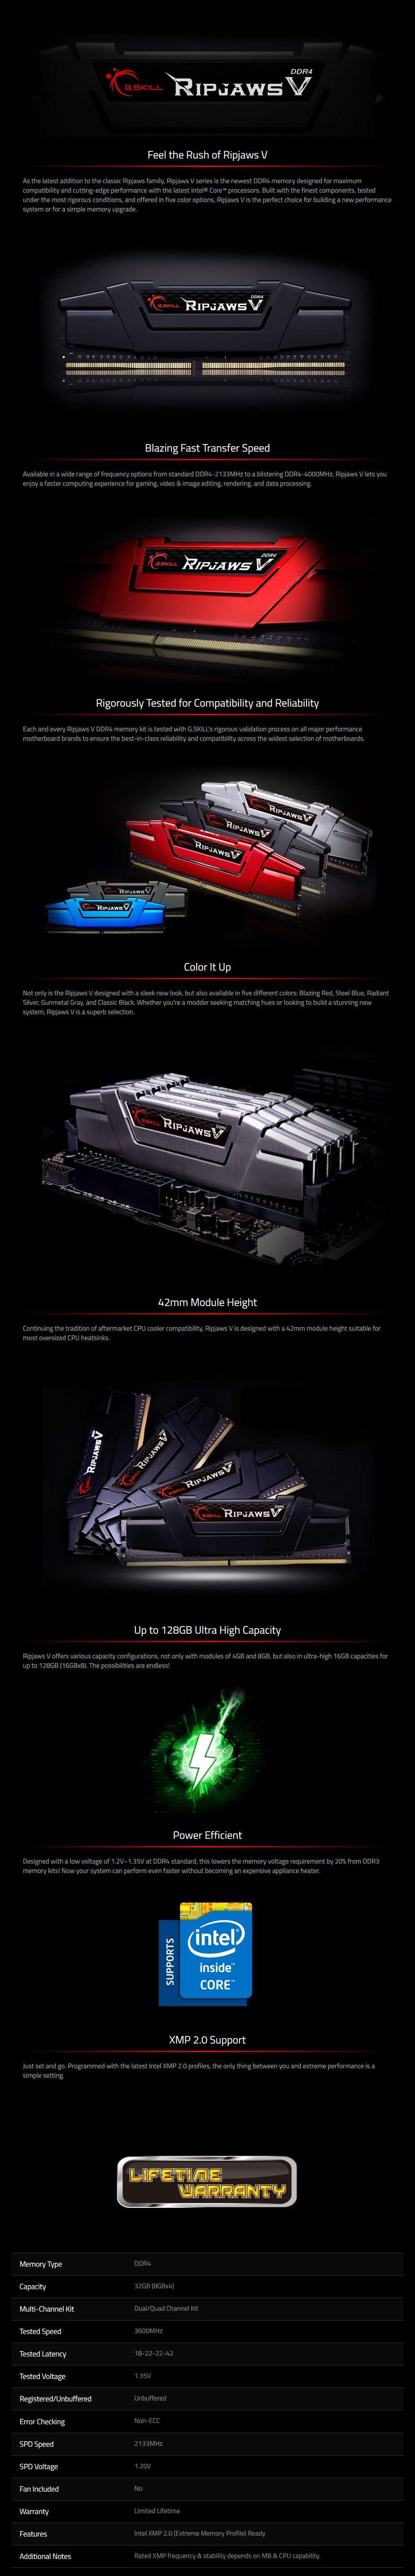 G.Skill Ripjaws V 32GB (4x 8GB) DDR4 3600MHz Memory - Black - Overview 1